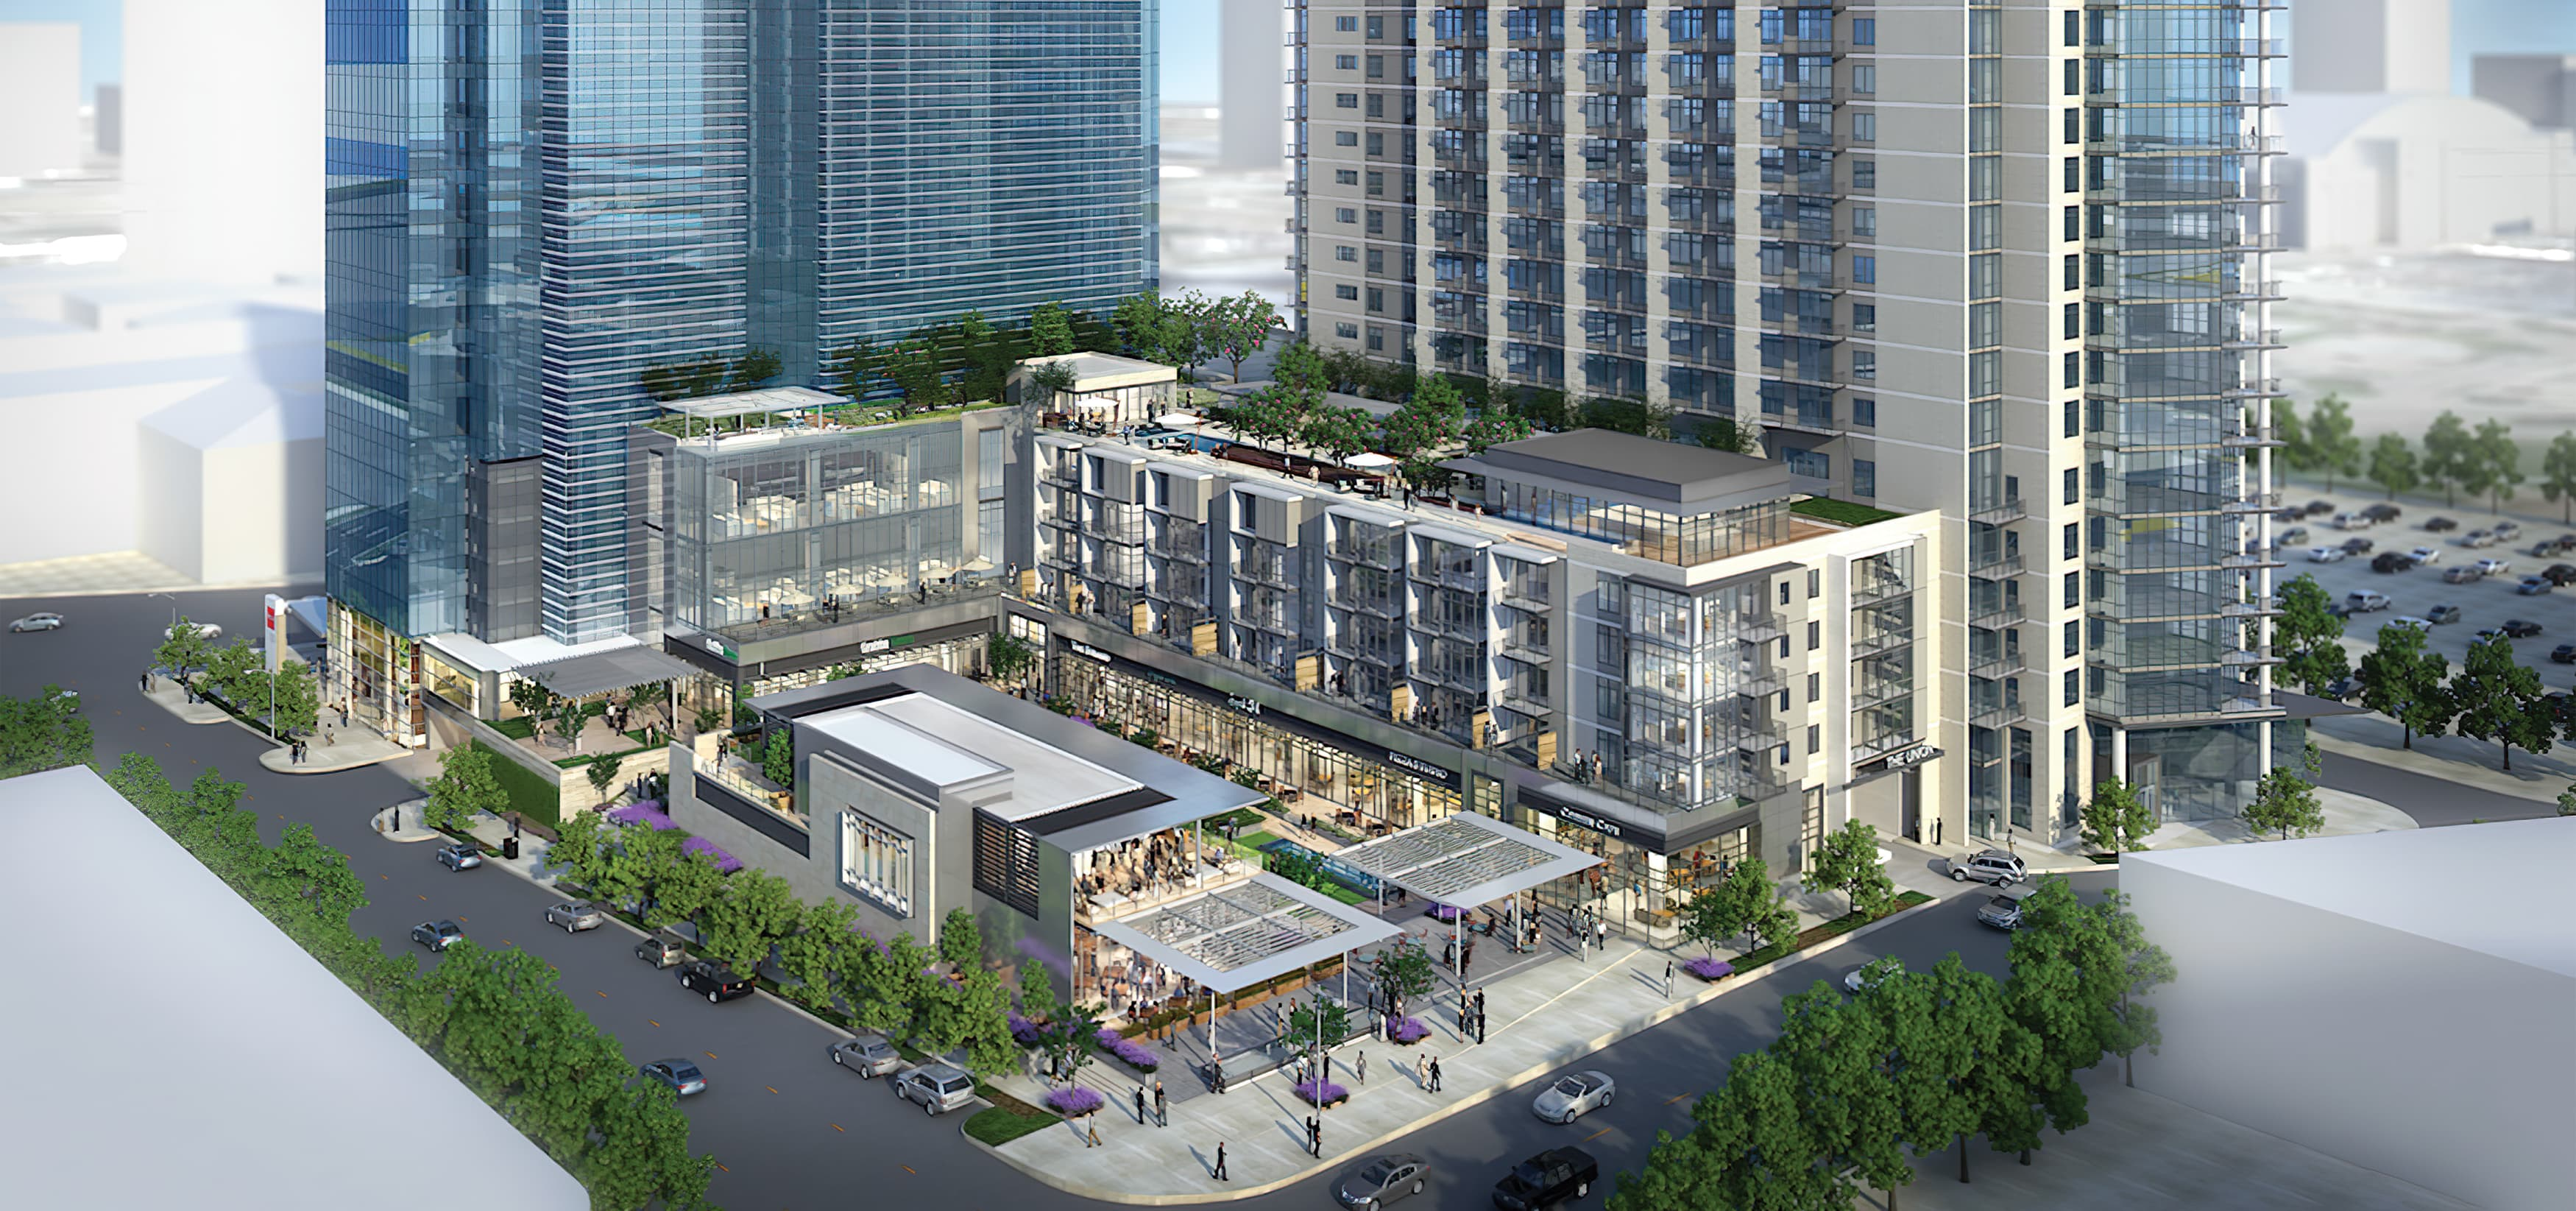 The Union, a mixed-use development with office space and residential space.